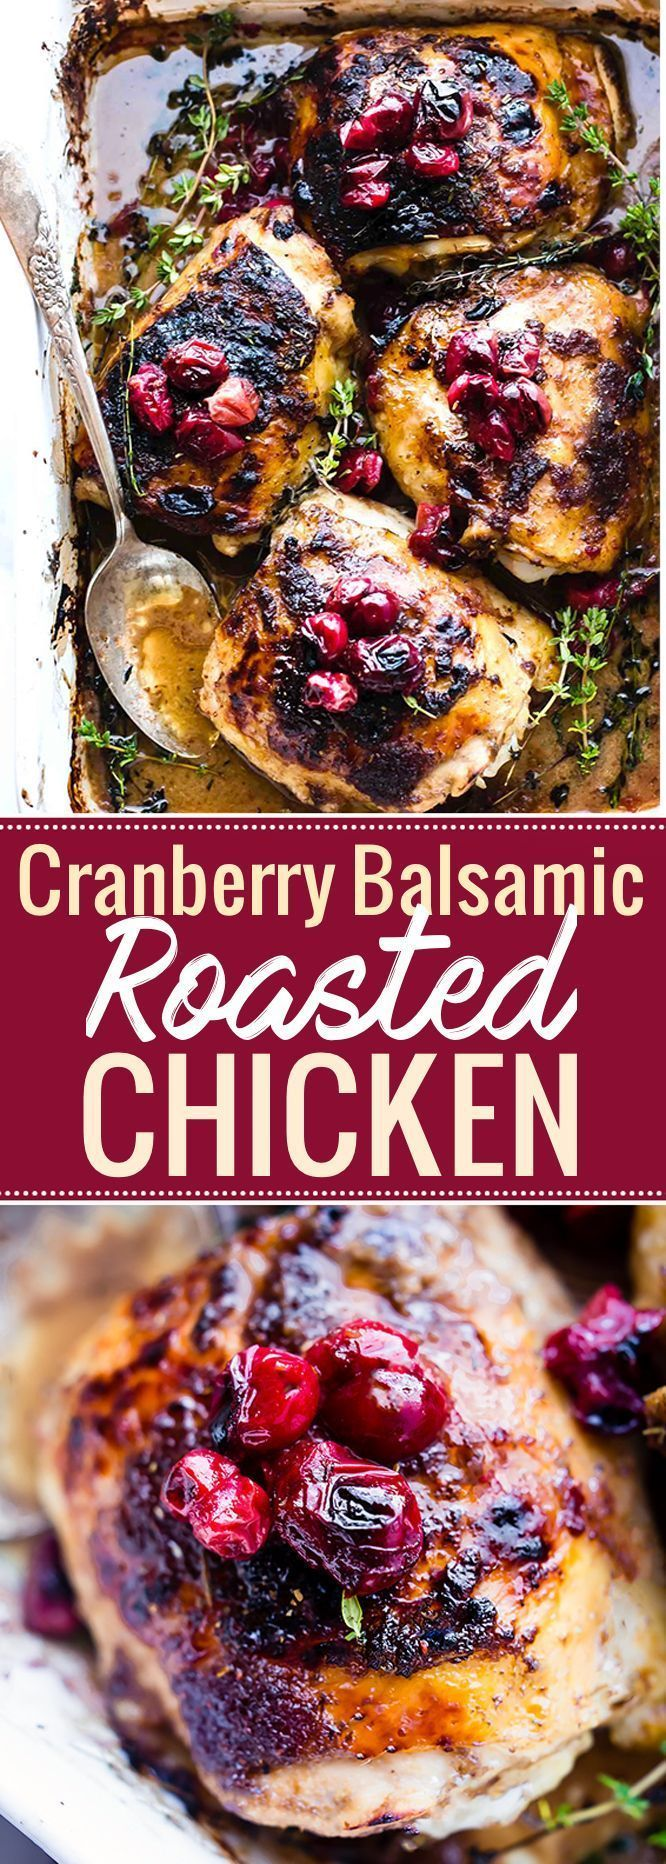 ONE pan Cranberry Balsamic Roasted Chicken! Your holiday table is complete. This Paleo Cranberry Balsamic Roasted Chicken is a simple yet healthy dinner. A sweet tangy marinade makes this roasted chicken extra juicy and extra crispy. One of our go to meals for meal prep too!  http://www.cottercrunch.com /cottercrunch/.com